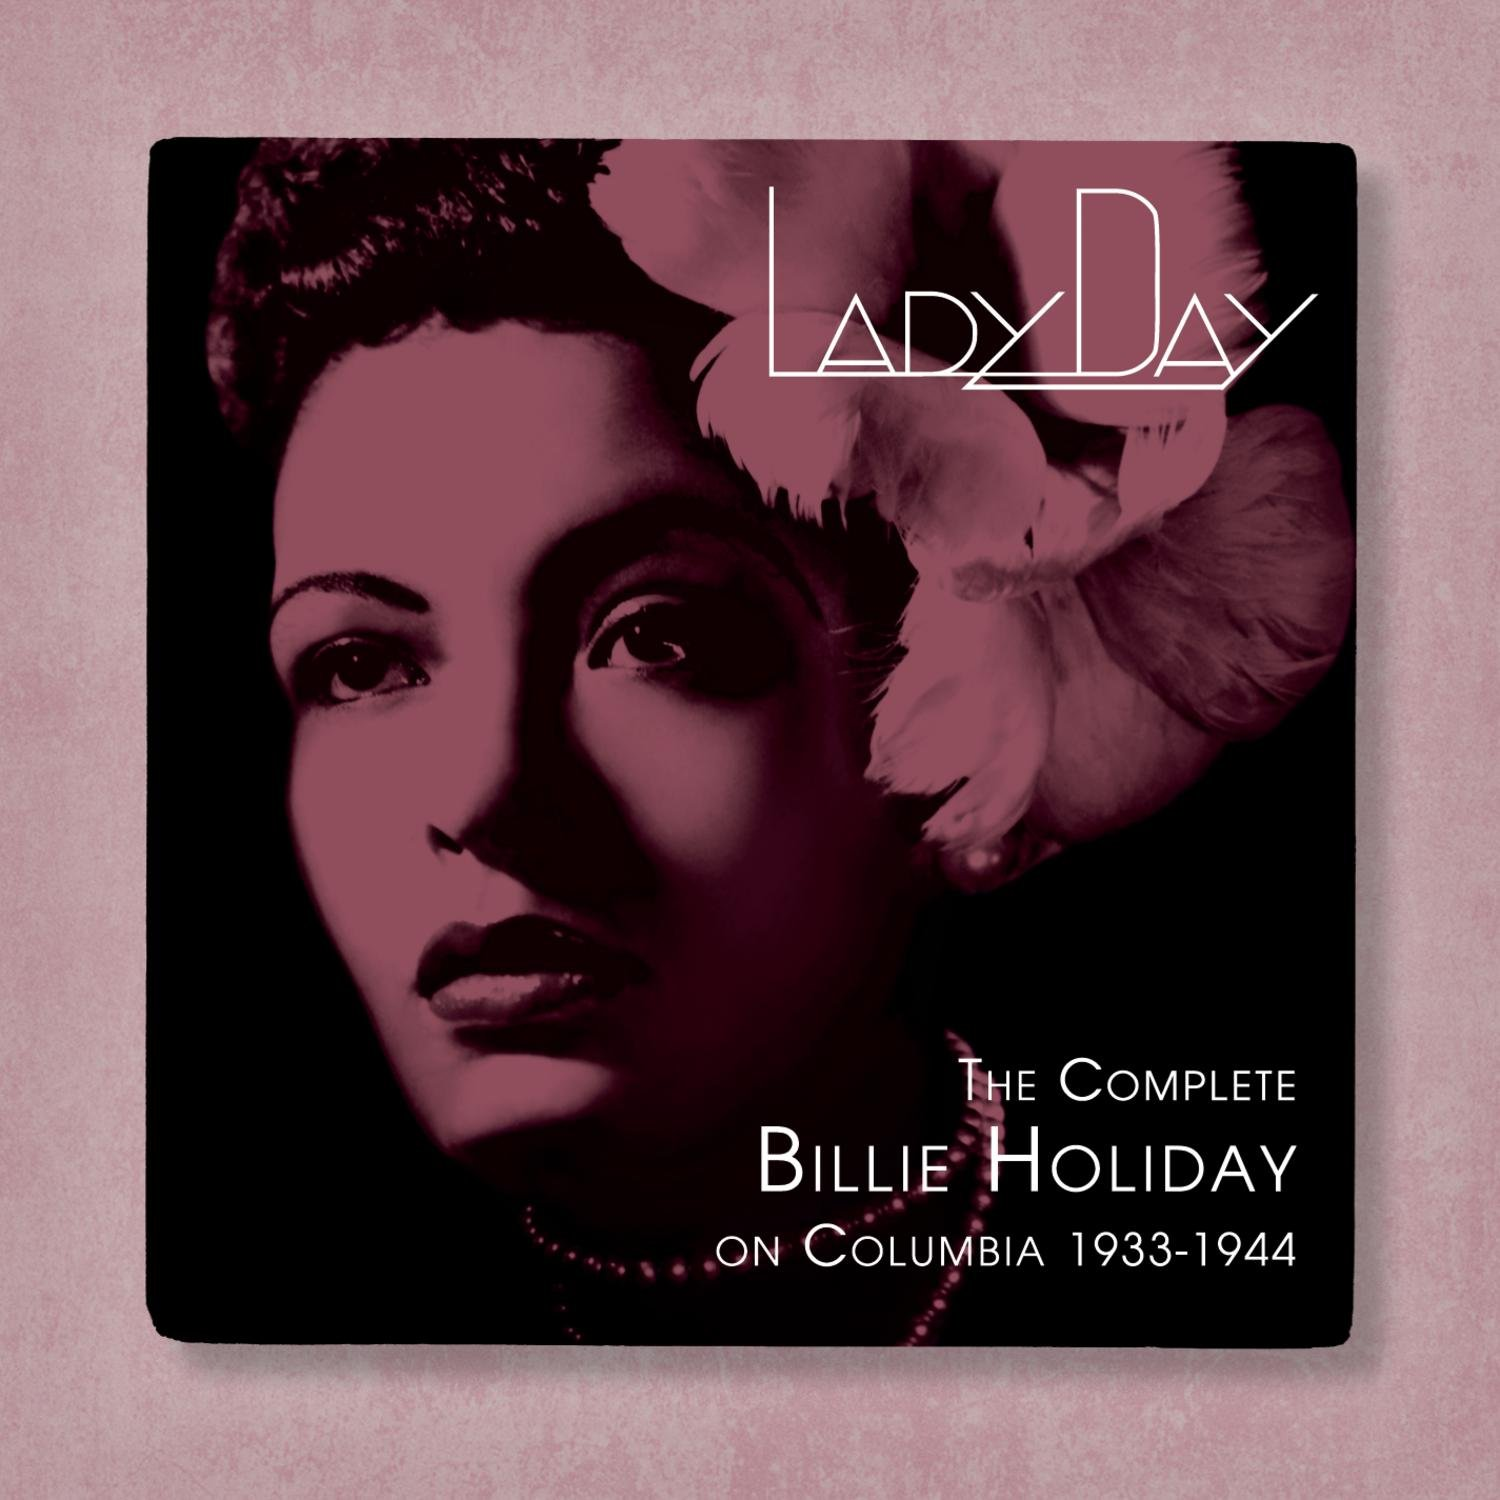 Lady Day: The Complete Billie Holiday on Columbia - 1933-1944